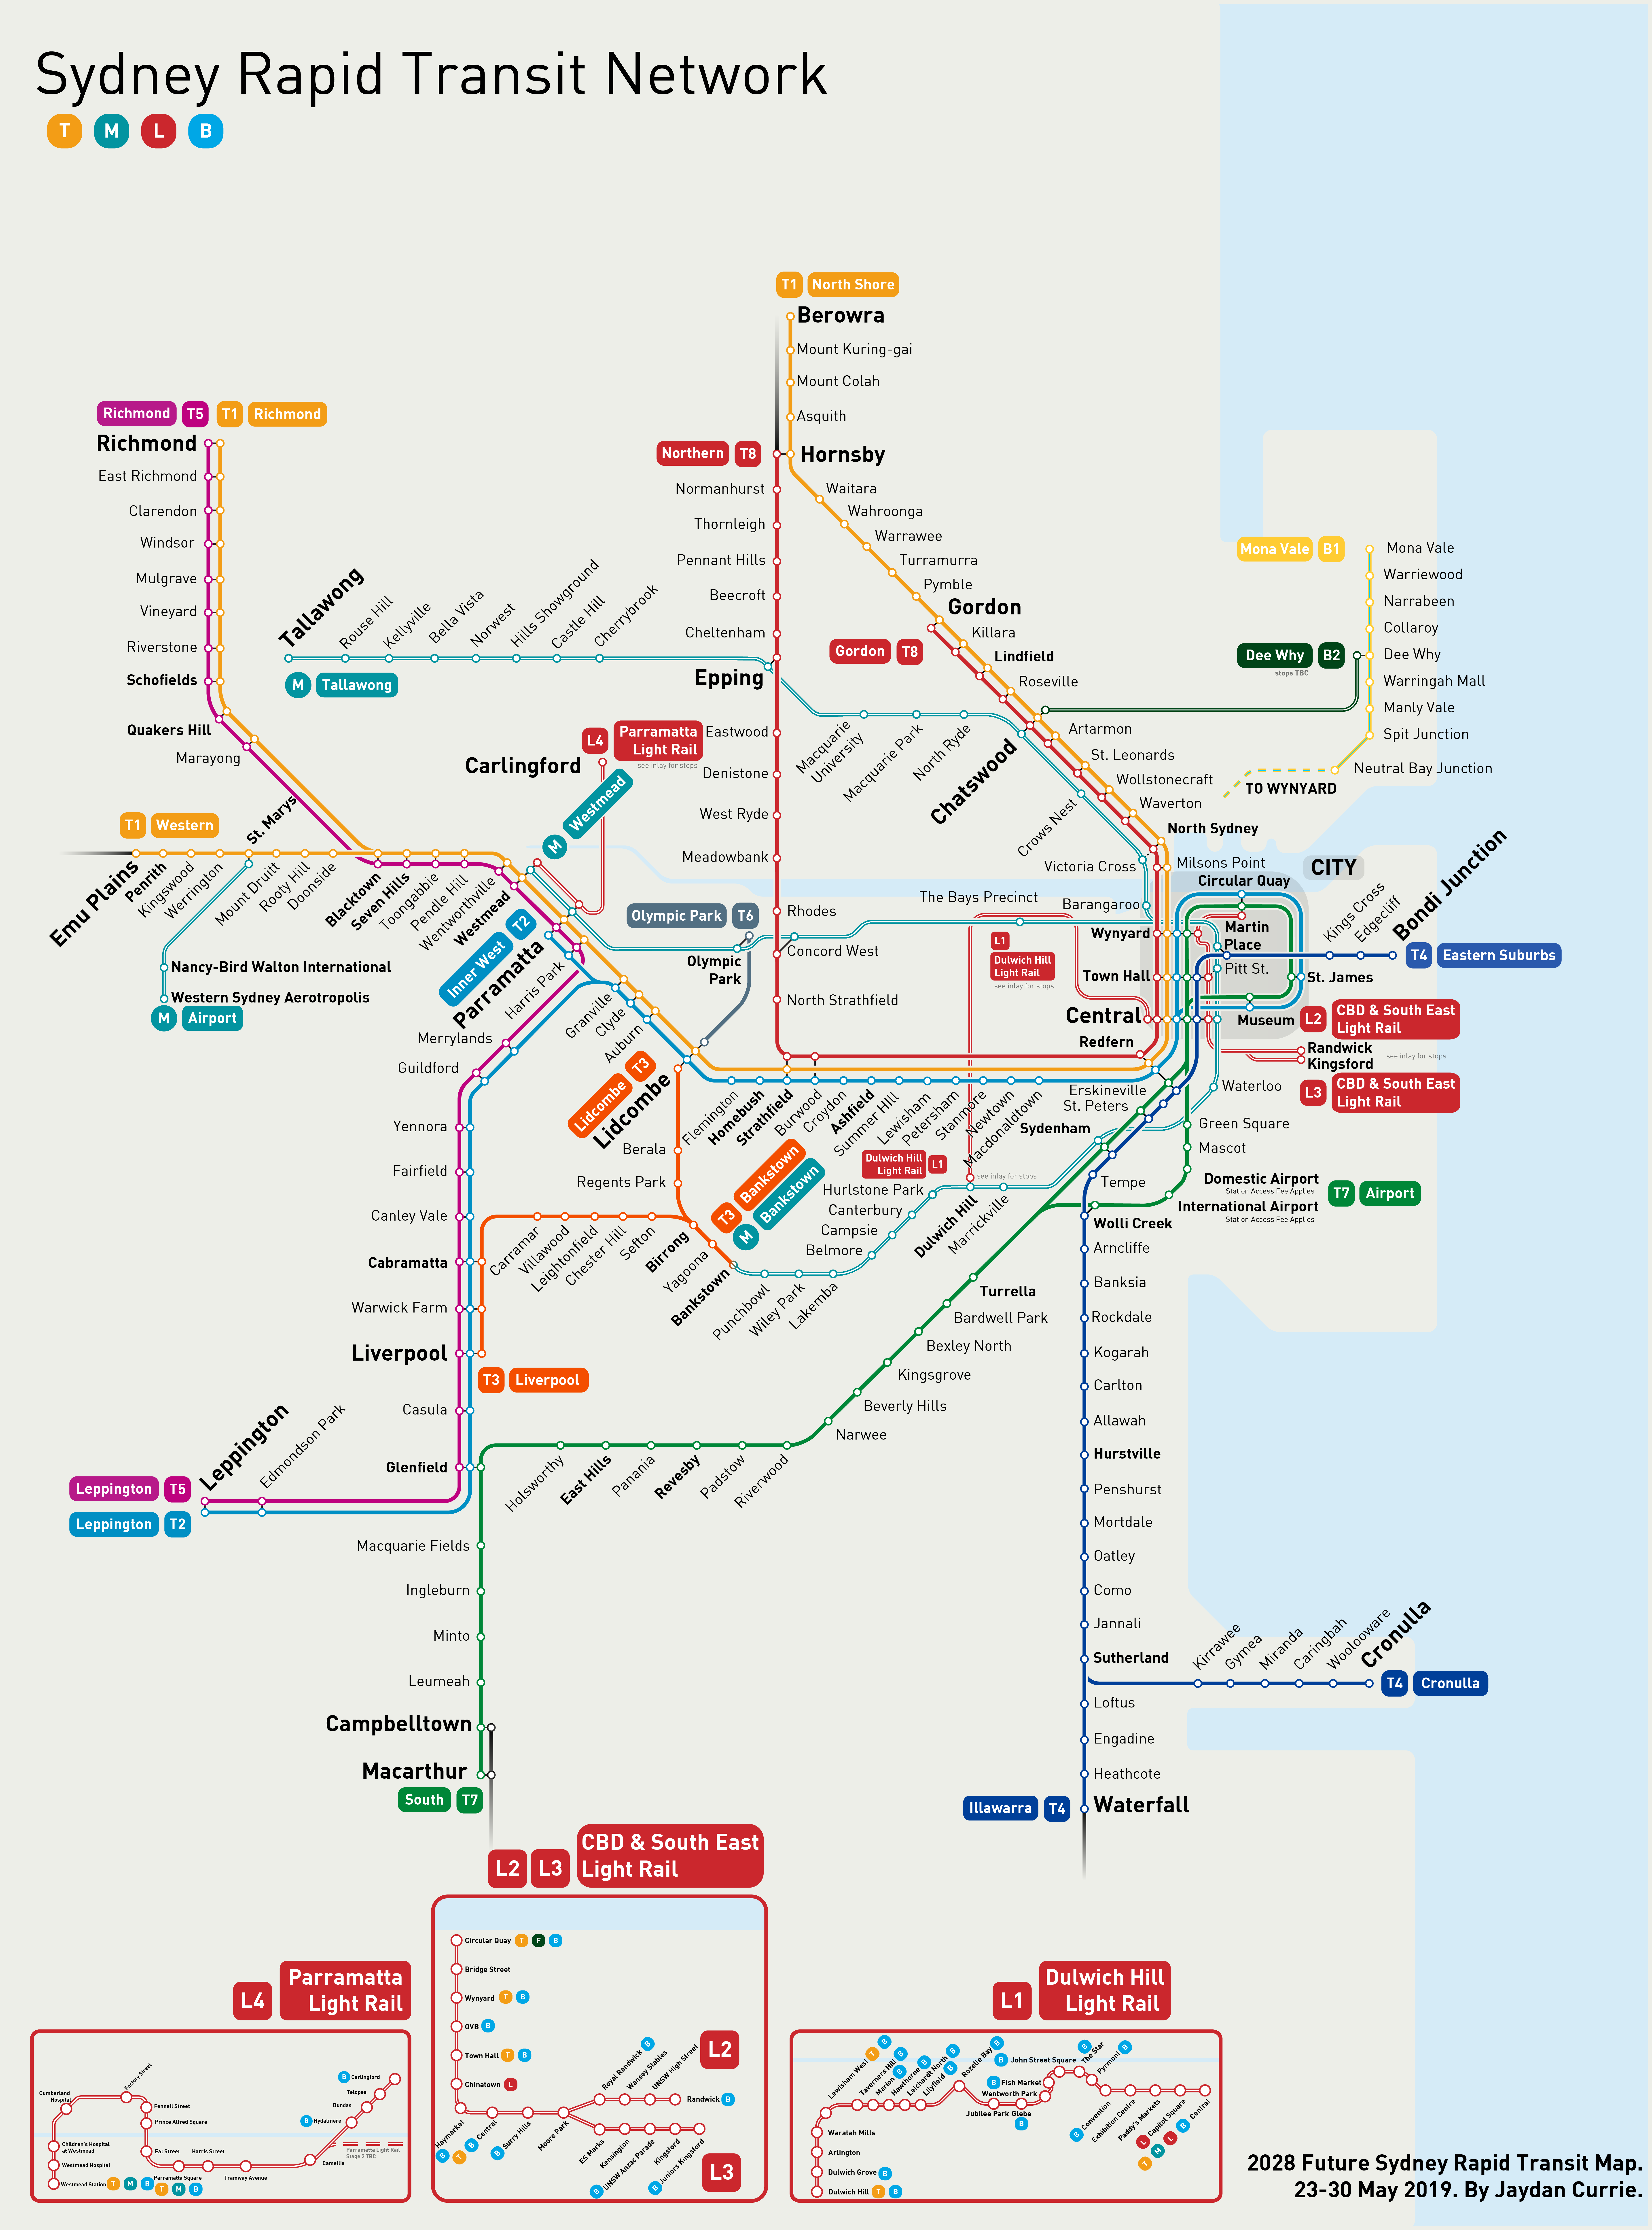 Subway Map Sydney.My Redesigned Future Rapid Transit Map For Sydney Whaddya Think In 2020 Transit Map Train Map Subway Map Design